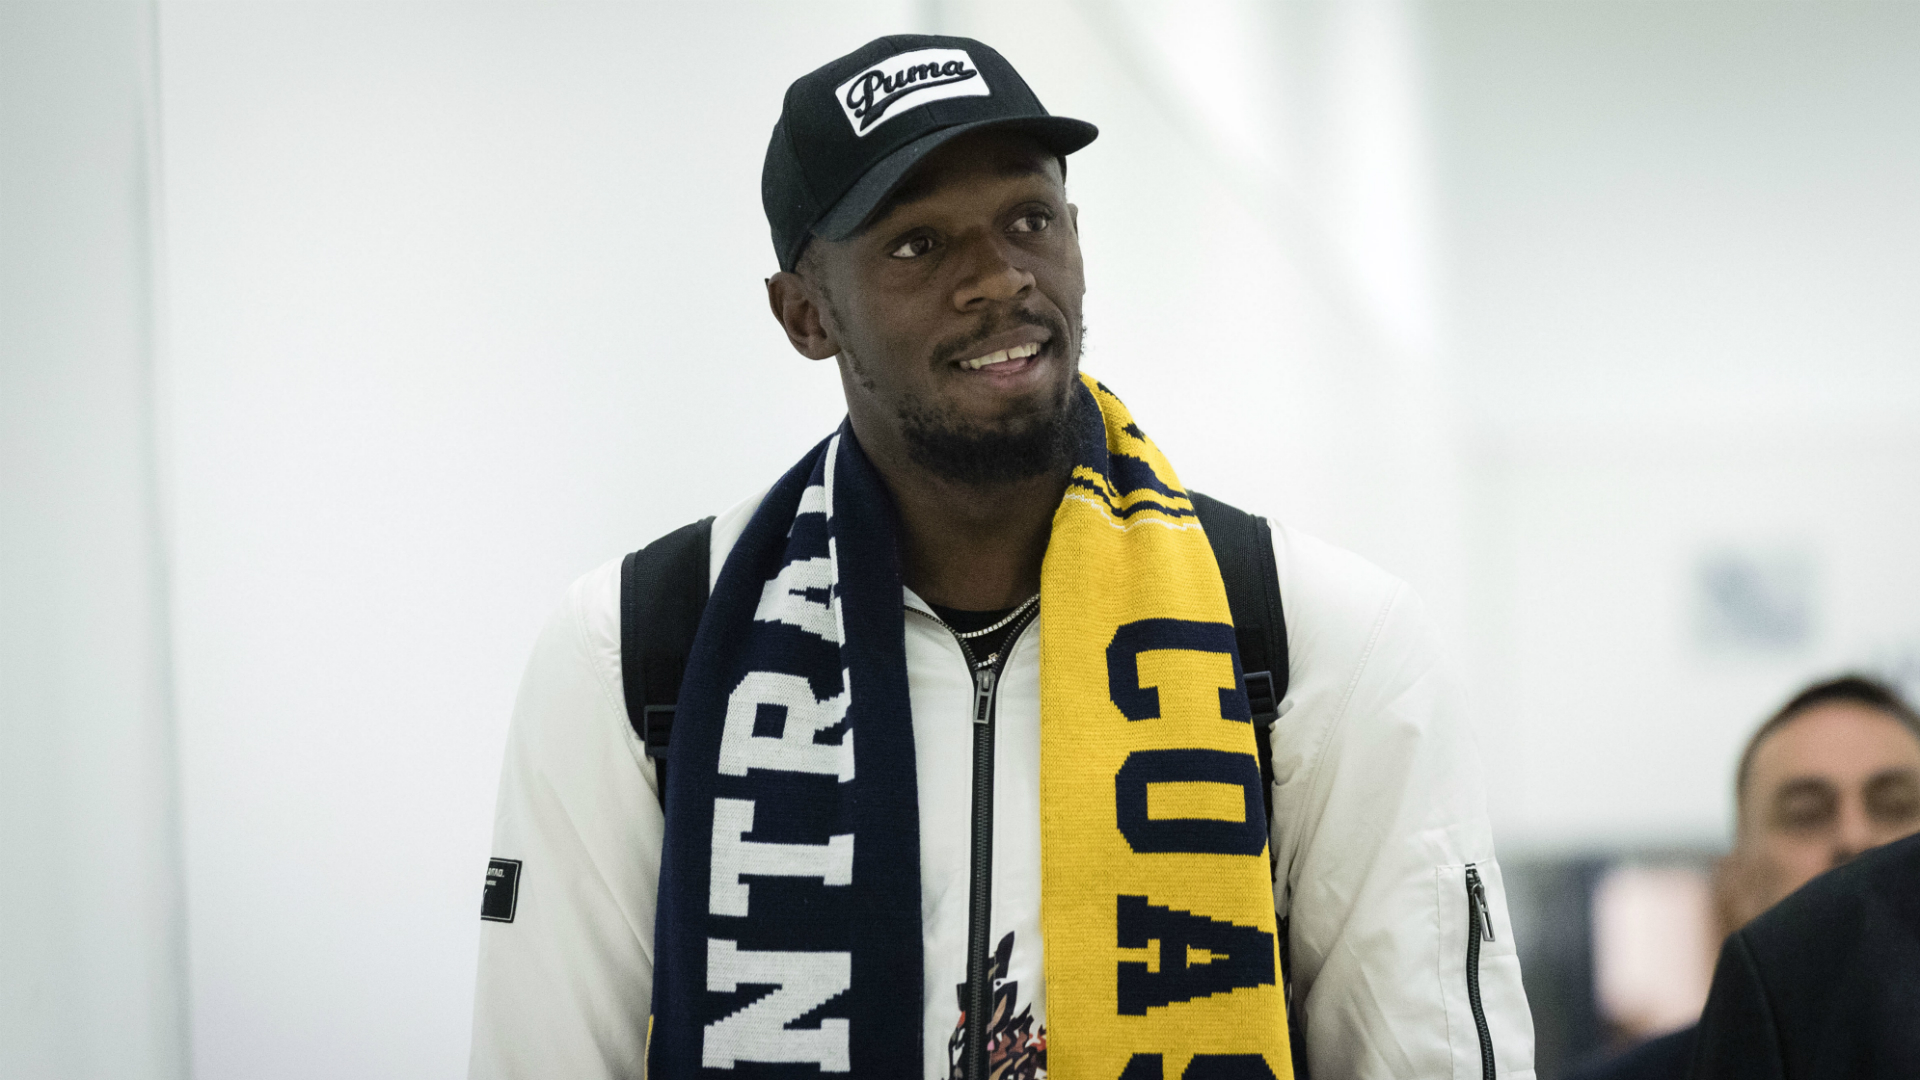 Bolt arrives in Sydney for A-League trial